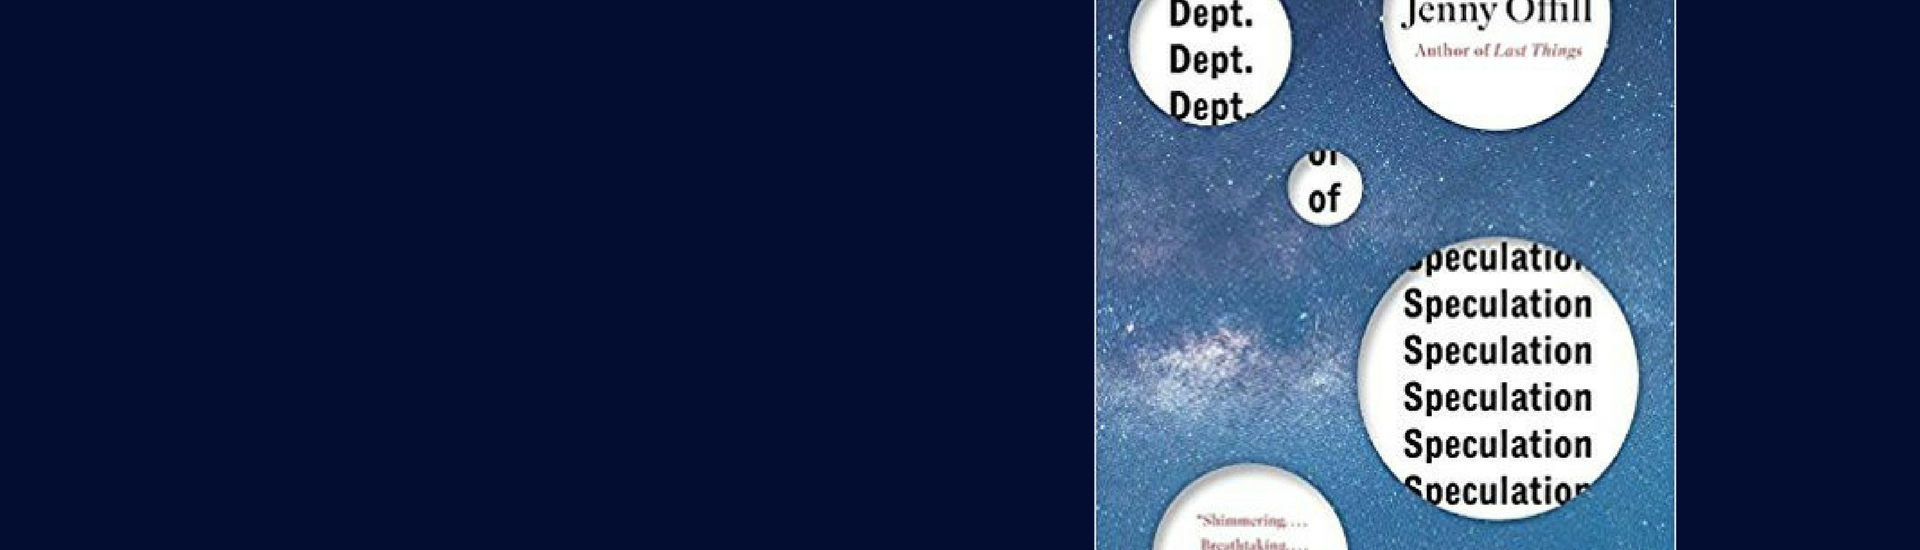 Dept of Speculation by Jenny Offill - a Literary Wives reflection